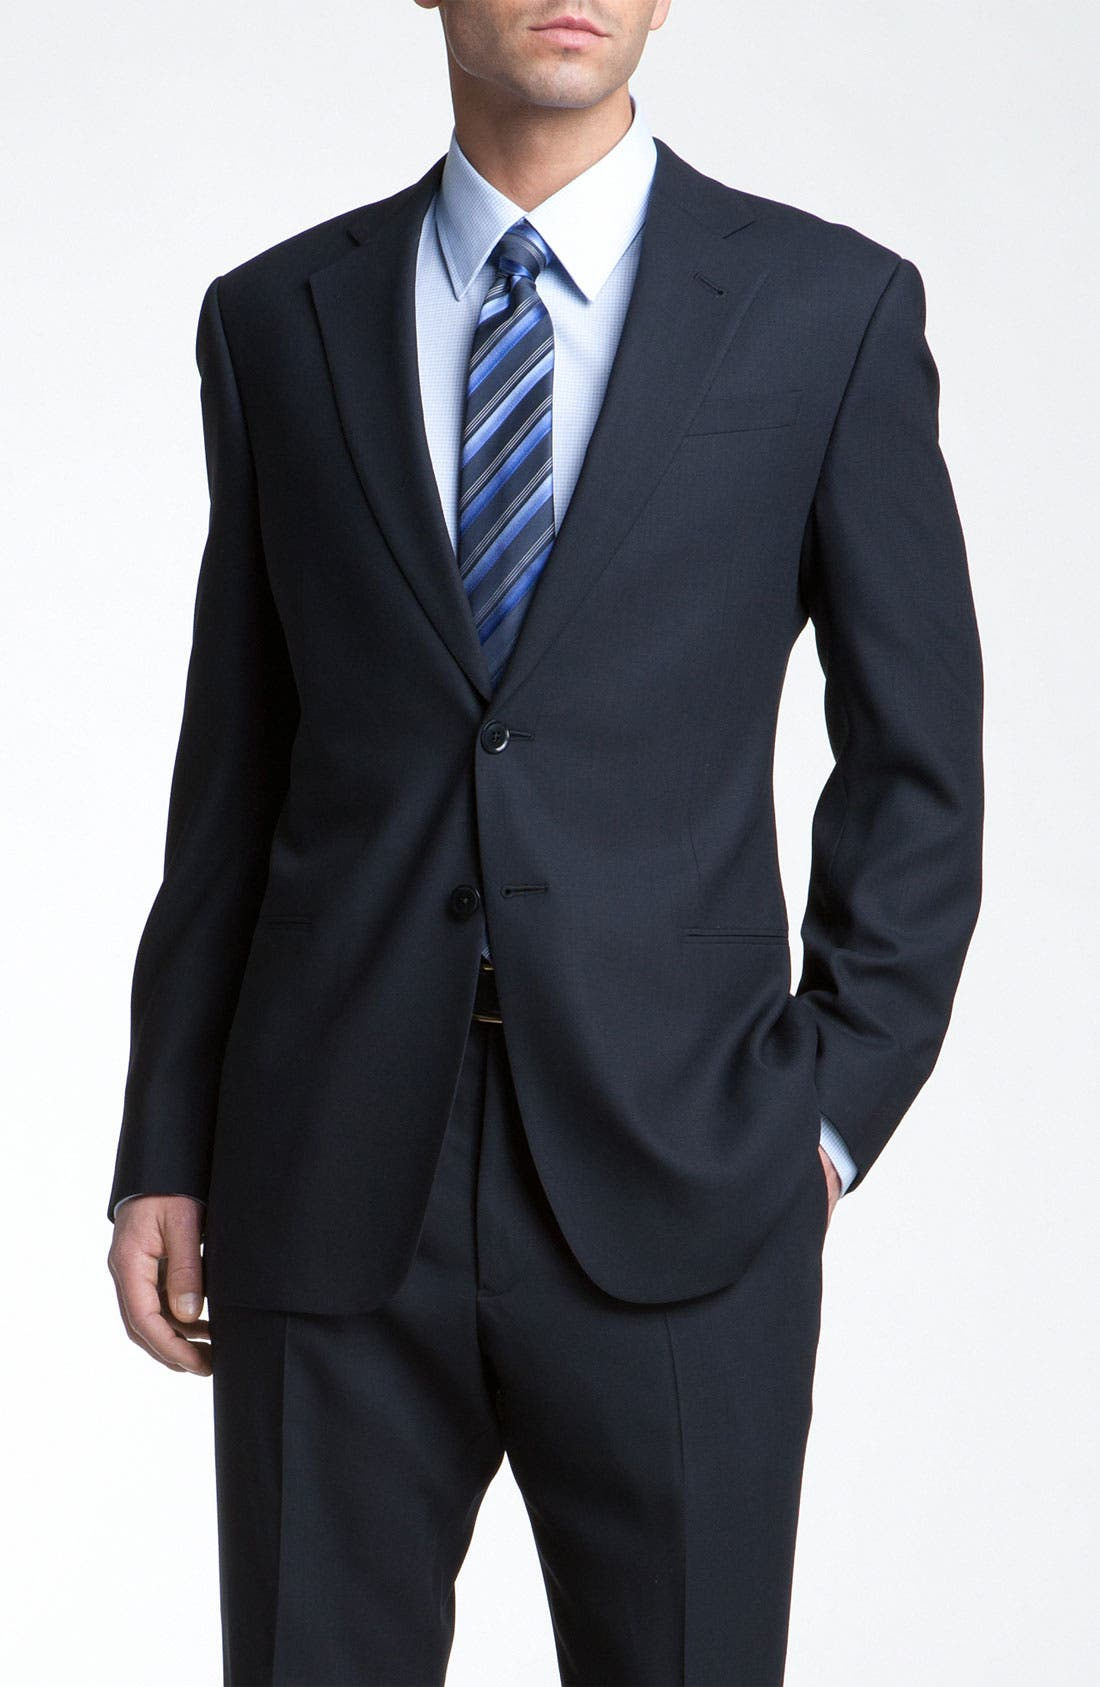 Main Image - Armani Collezioni Trim Fit Wool Suit